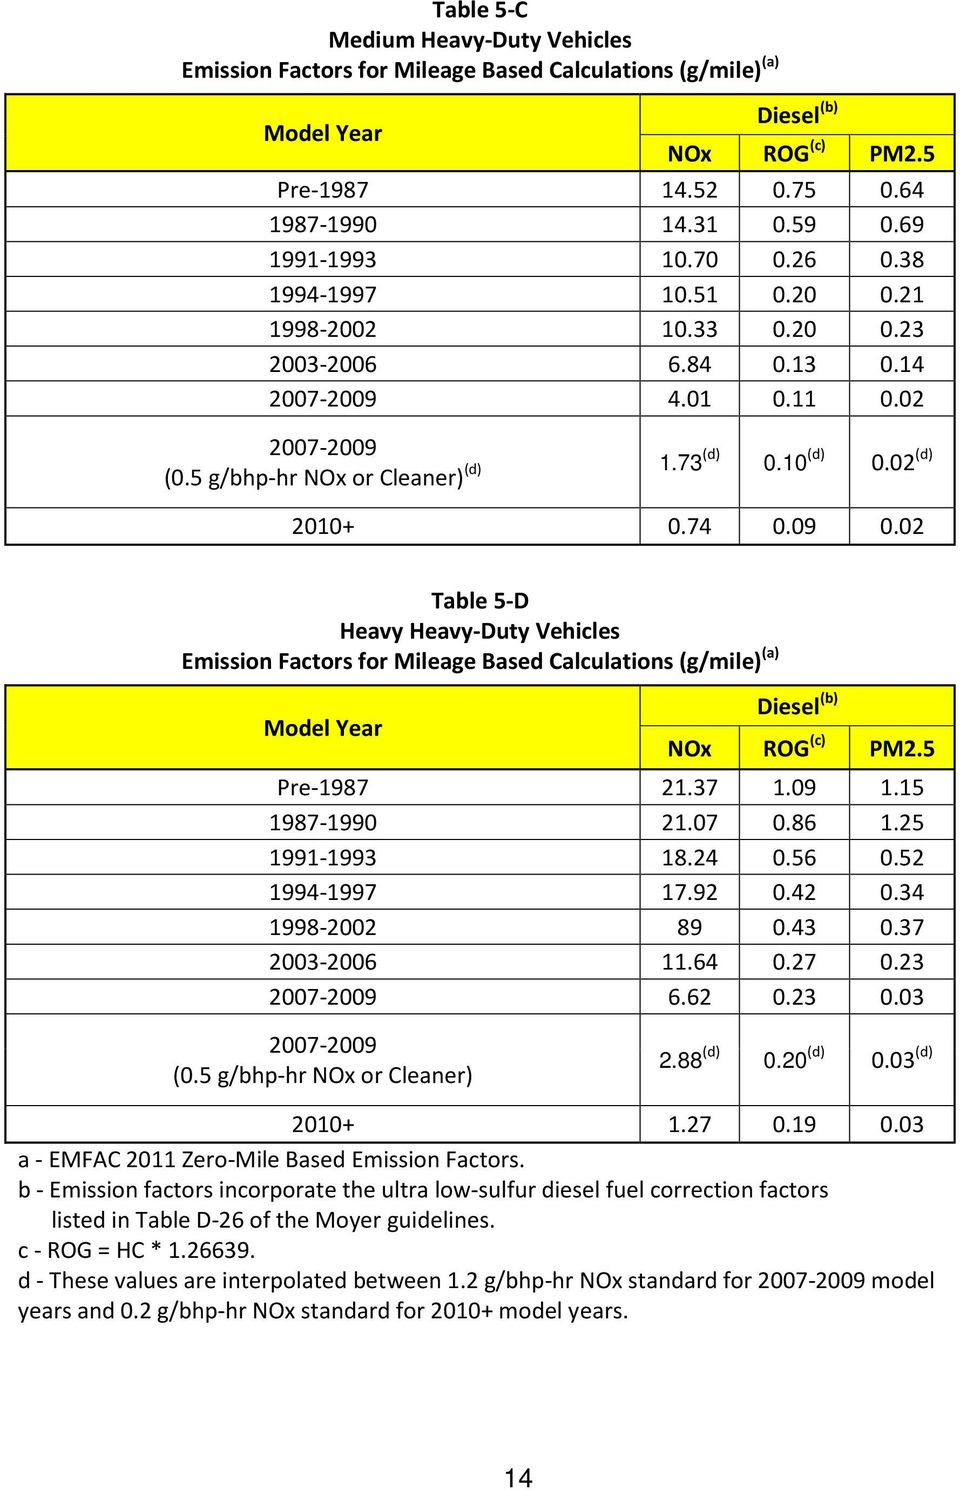 02 (d) 2010+ 0.74 0.09 0.02 Table 5-D Heavy Heavy-Duty Vehicles Emission Factors for Mileage Based Calculations (g/mile) (a) Model Year Diesel (b) NOx ROG (c) PM2.5 Pre-1987 21.37 1.09 1.